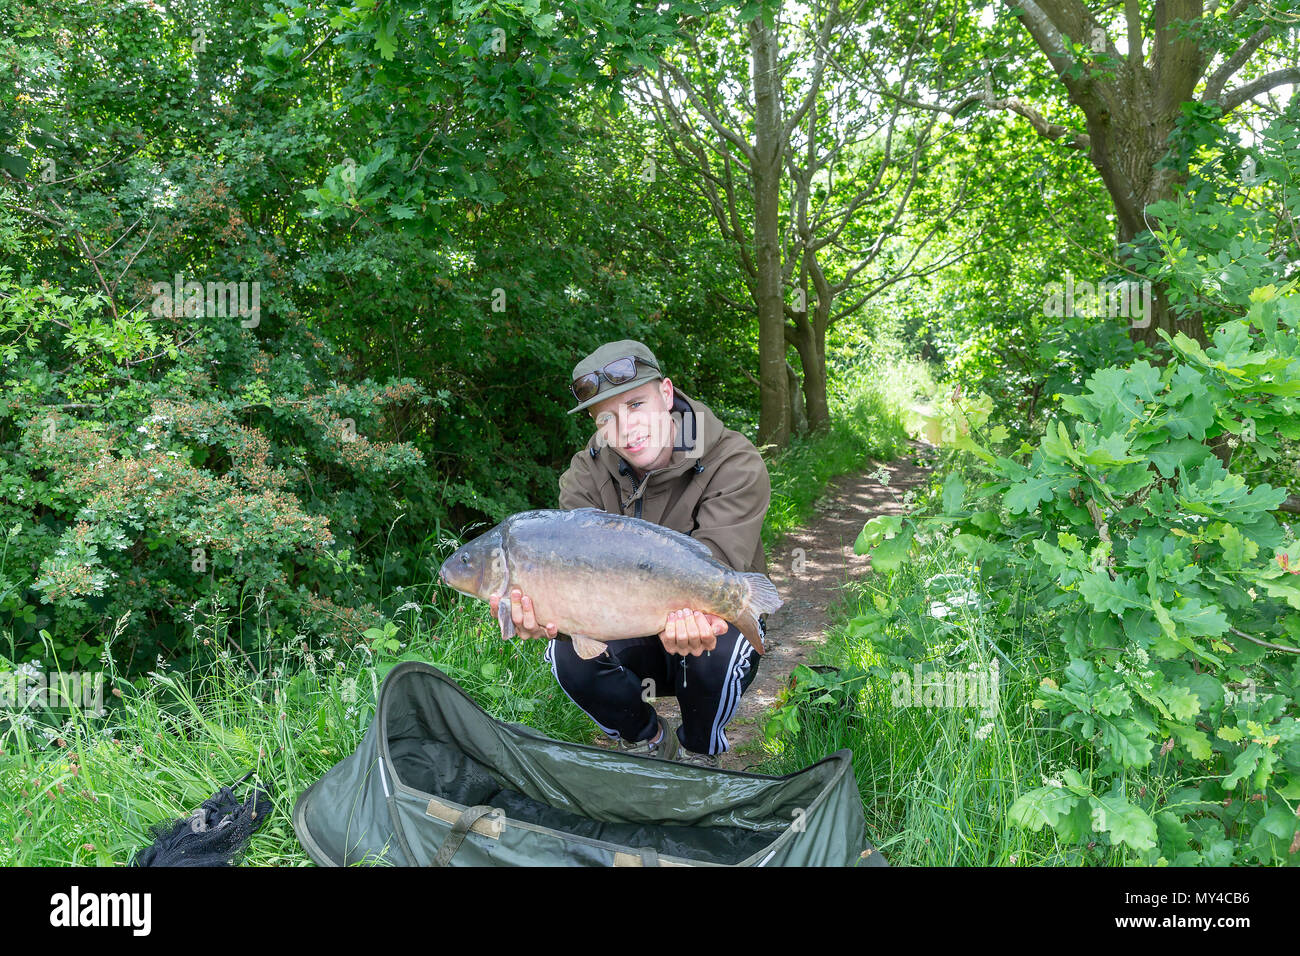 05 June 2018 - Young angler around Appleton Reservoir holds a 19 pound Carp with pride, Park Lane, Warrington, England, UK - Stock Image